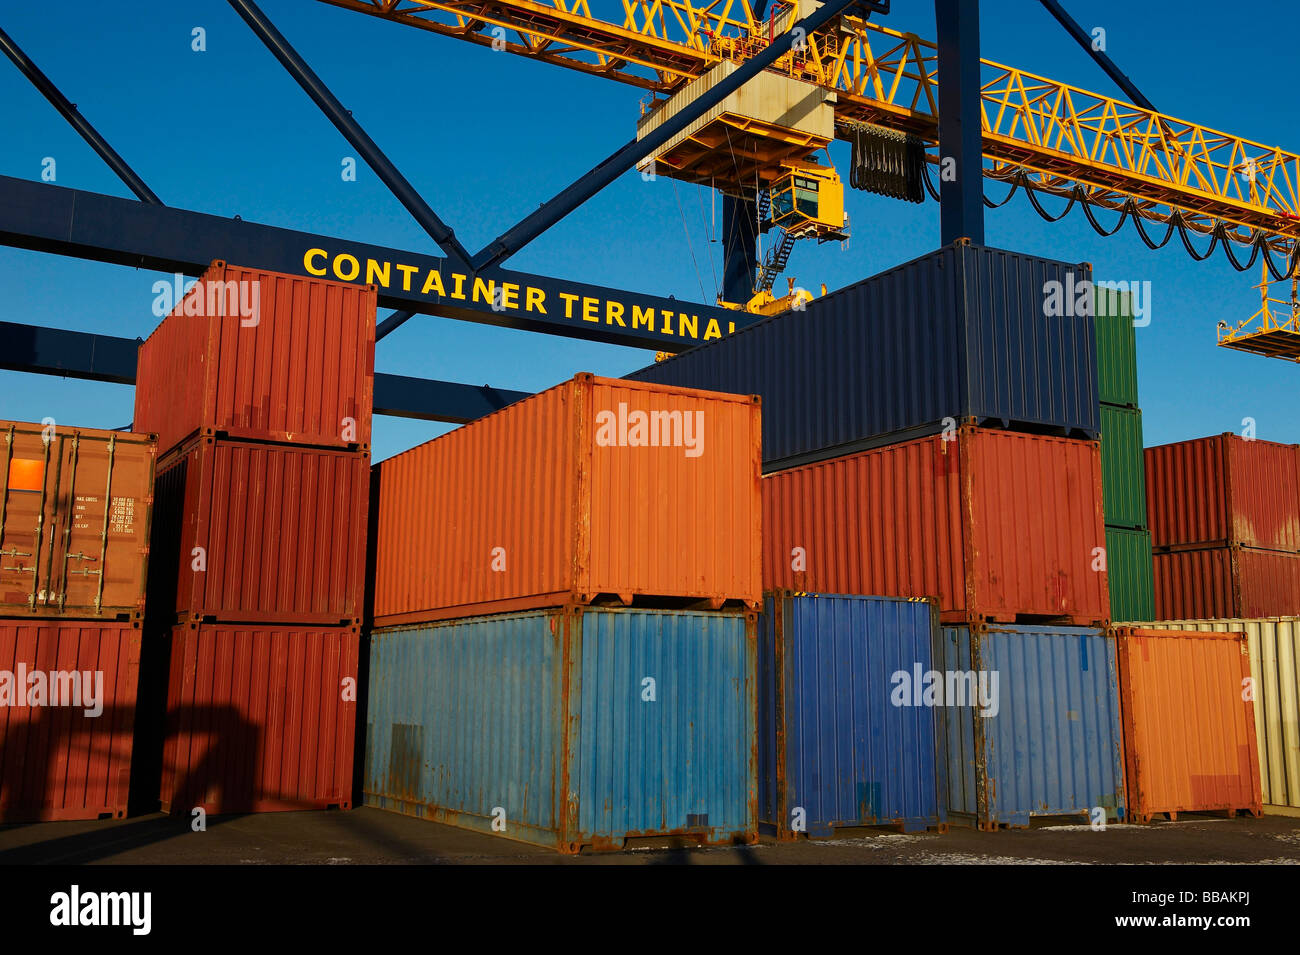 Containers in stacks at port Stock Photo